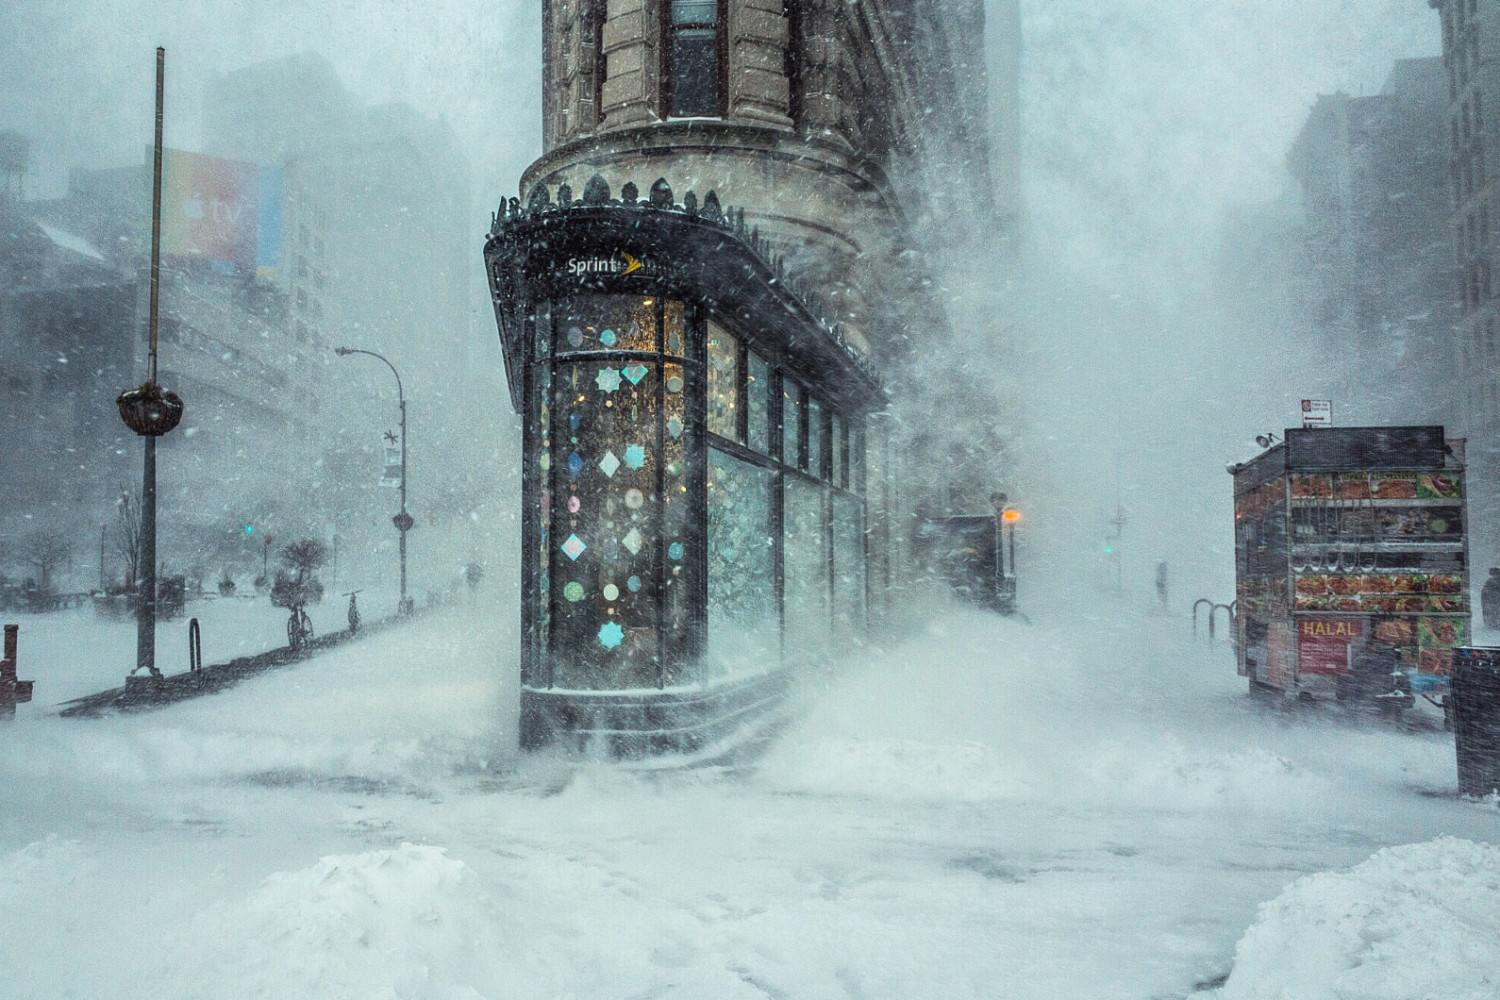 The Story Behind the Most Viral Photo from #Blizzard2016